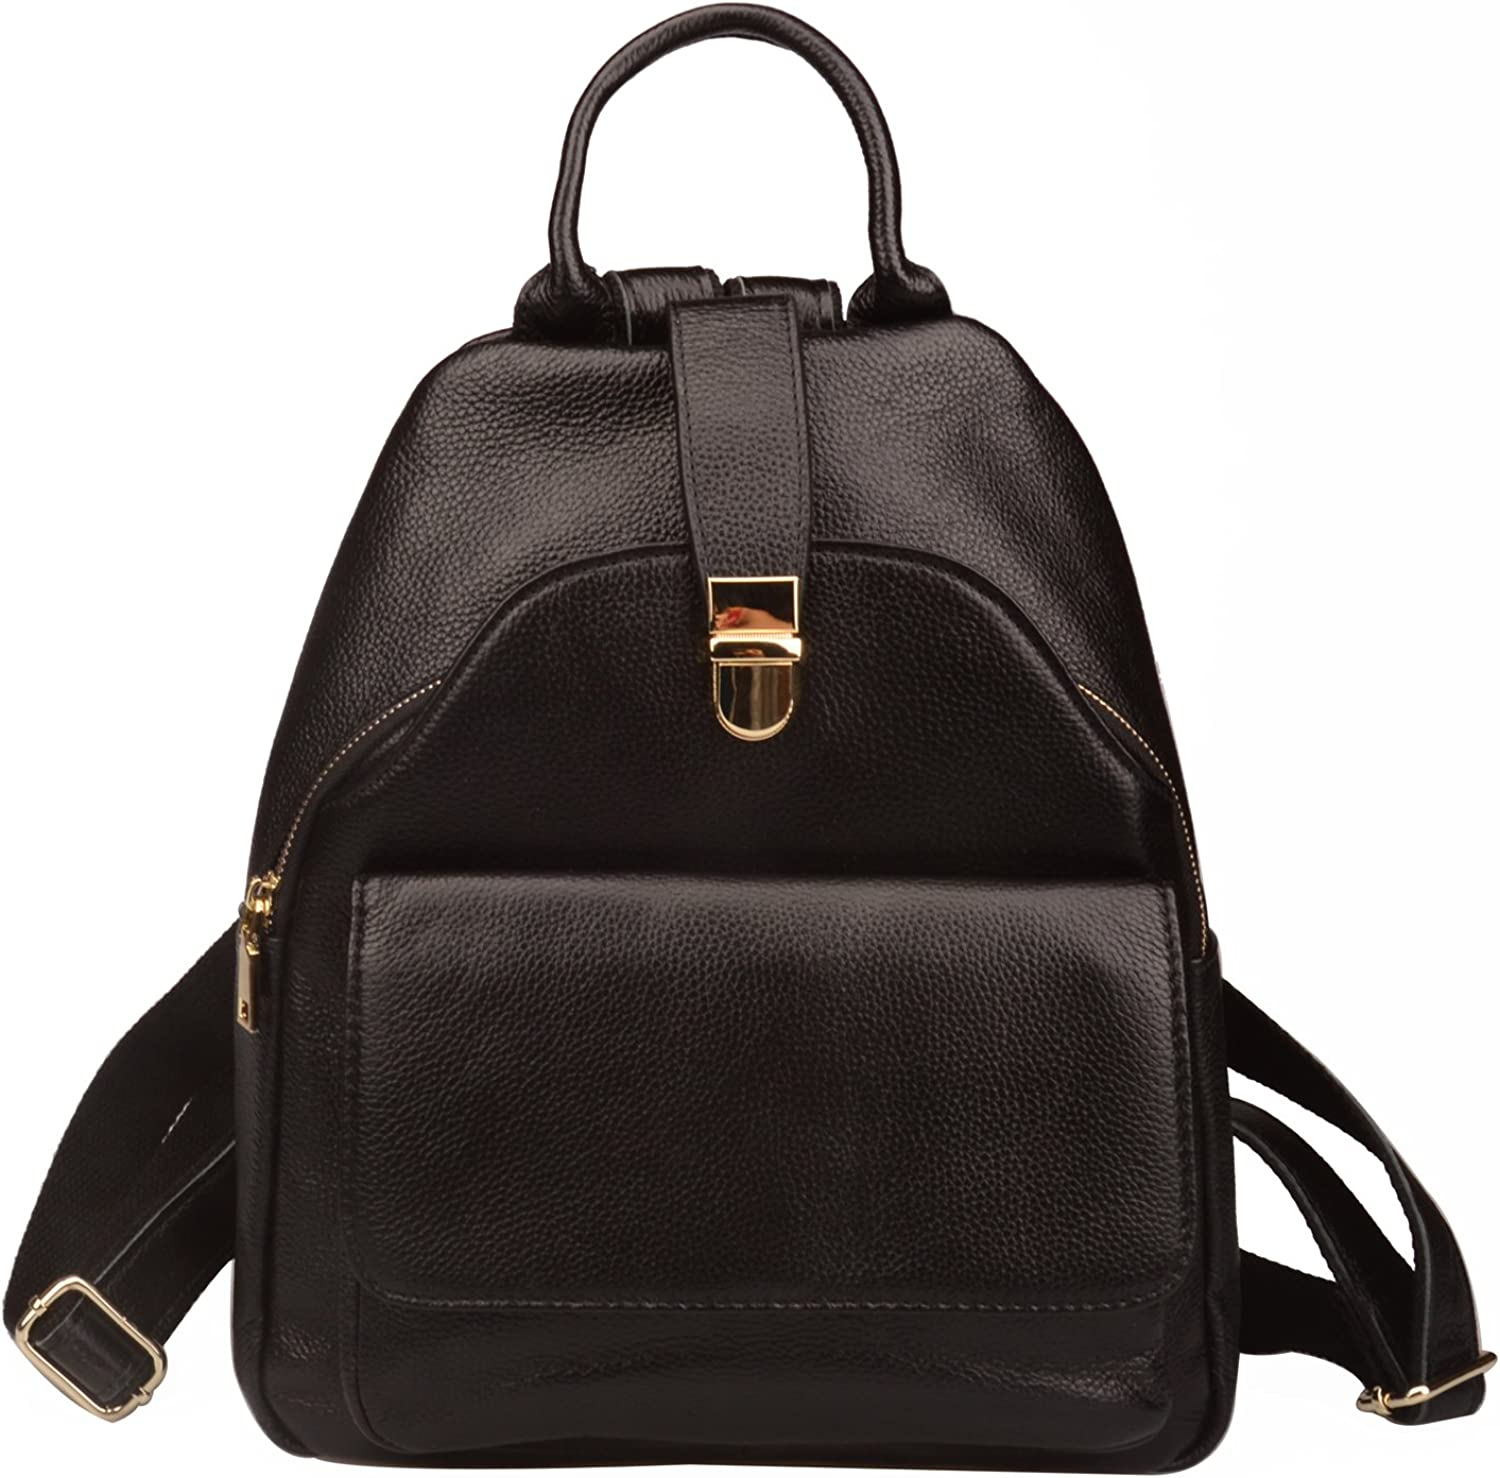 Fiswiss Women's Genuine Leather Everyday Backpack Handbags And Purses